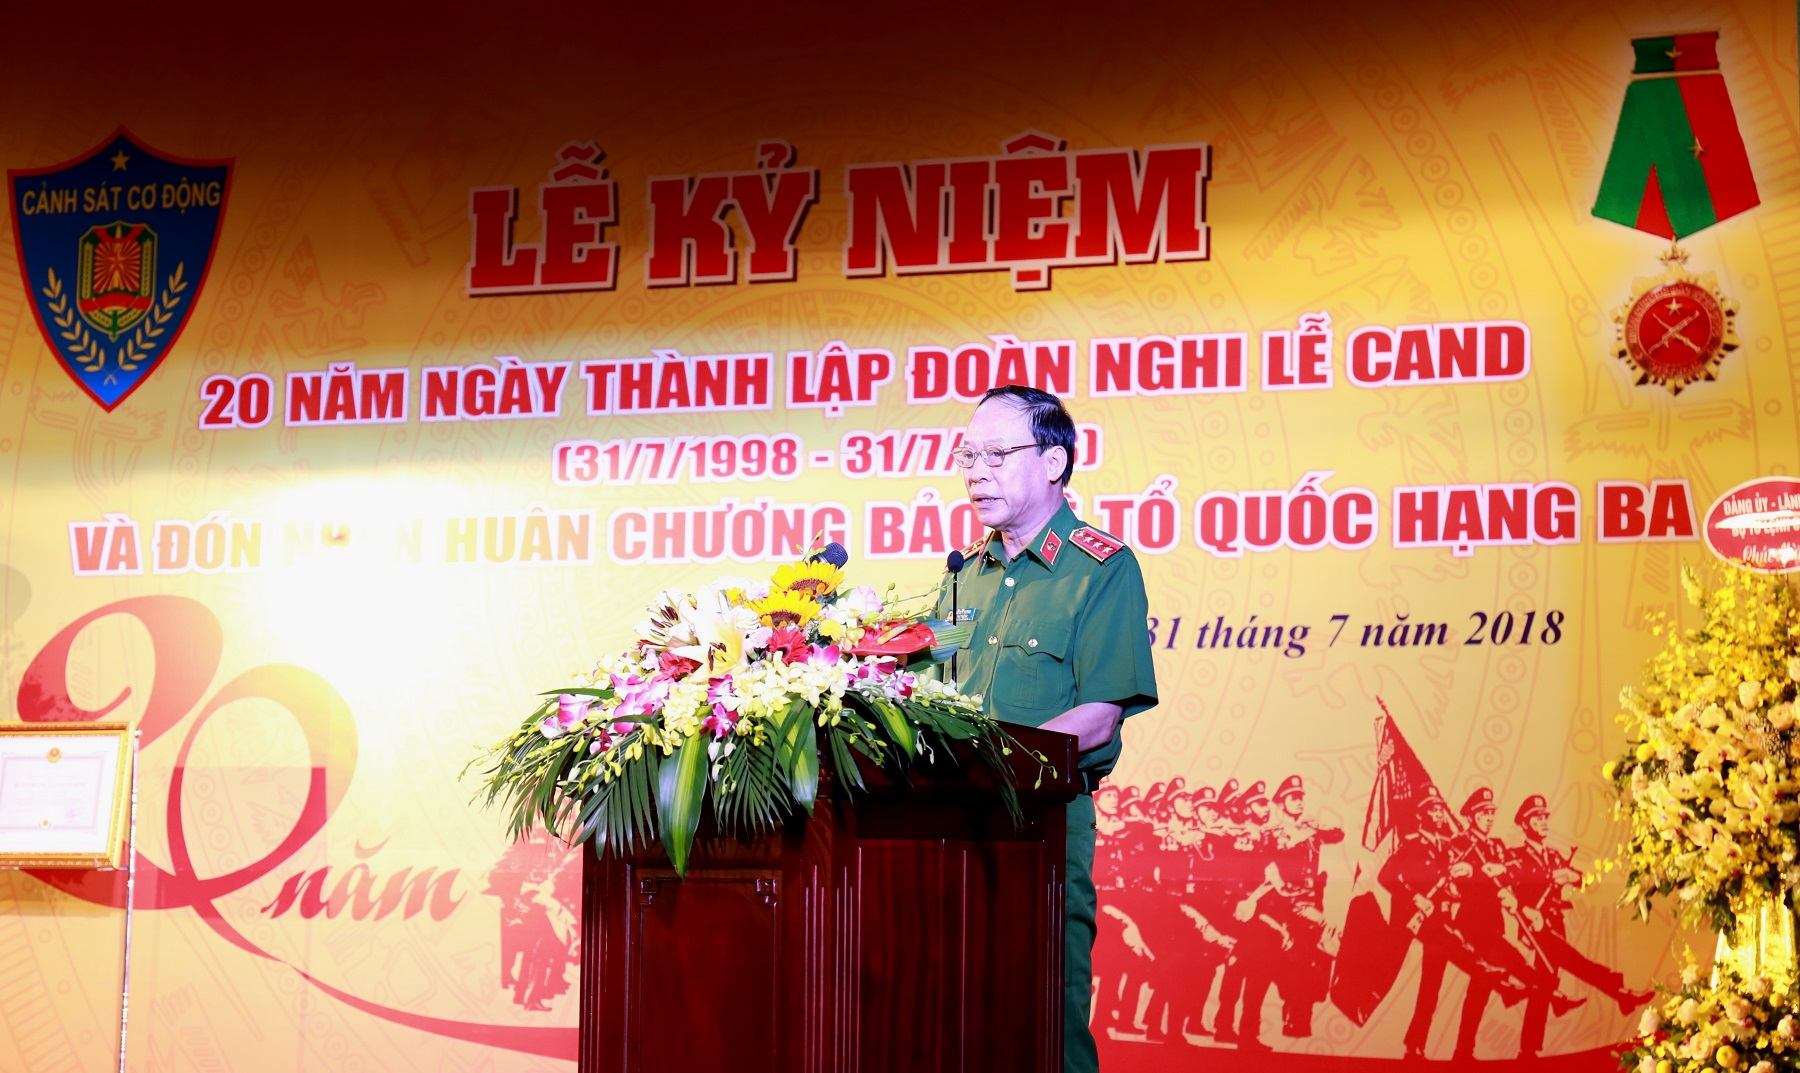 Deputy Minister Le Quy Vuong speaks at the ceremony.